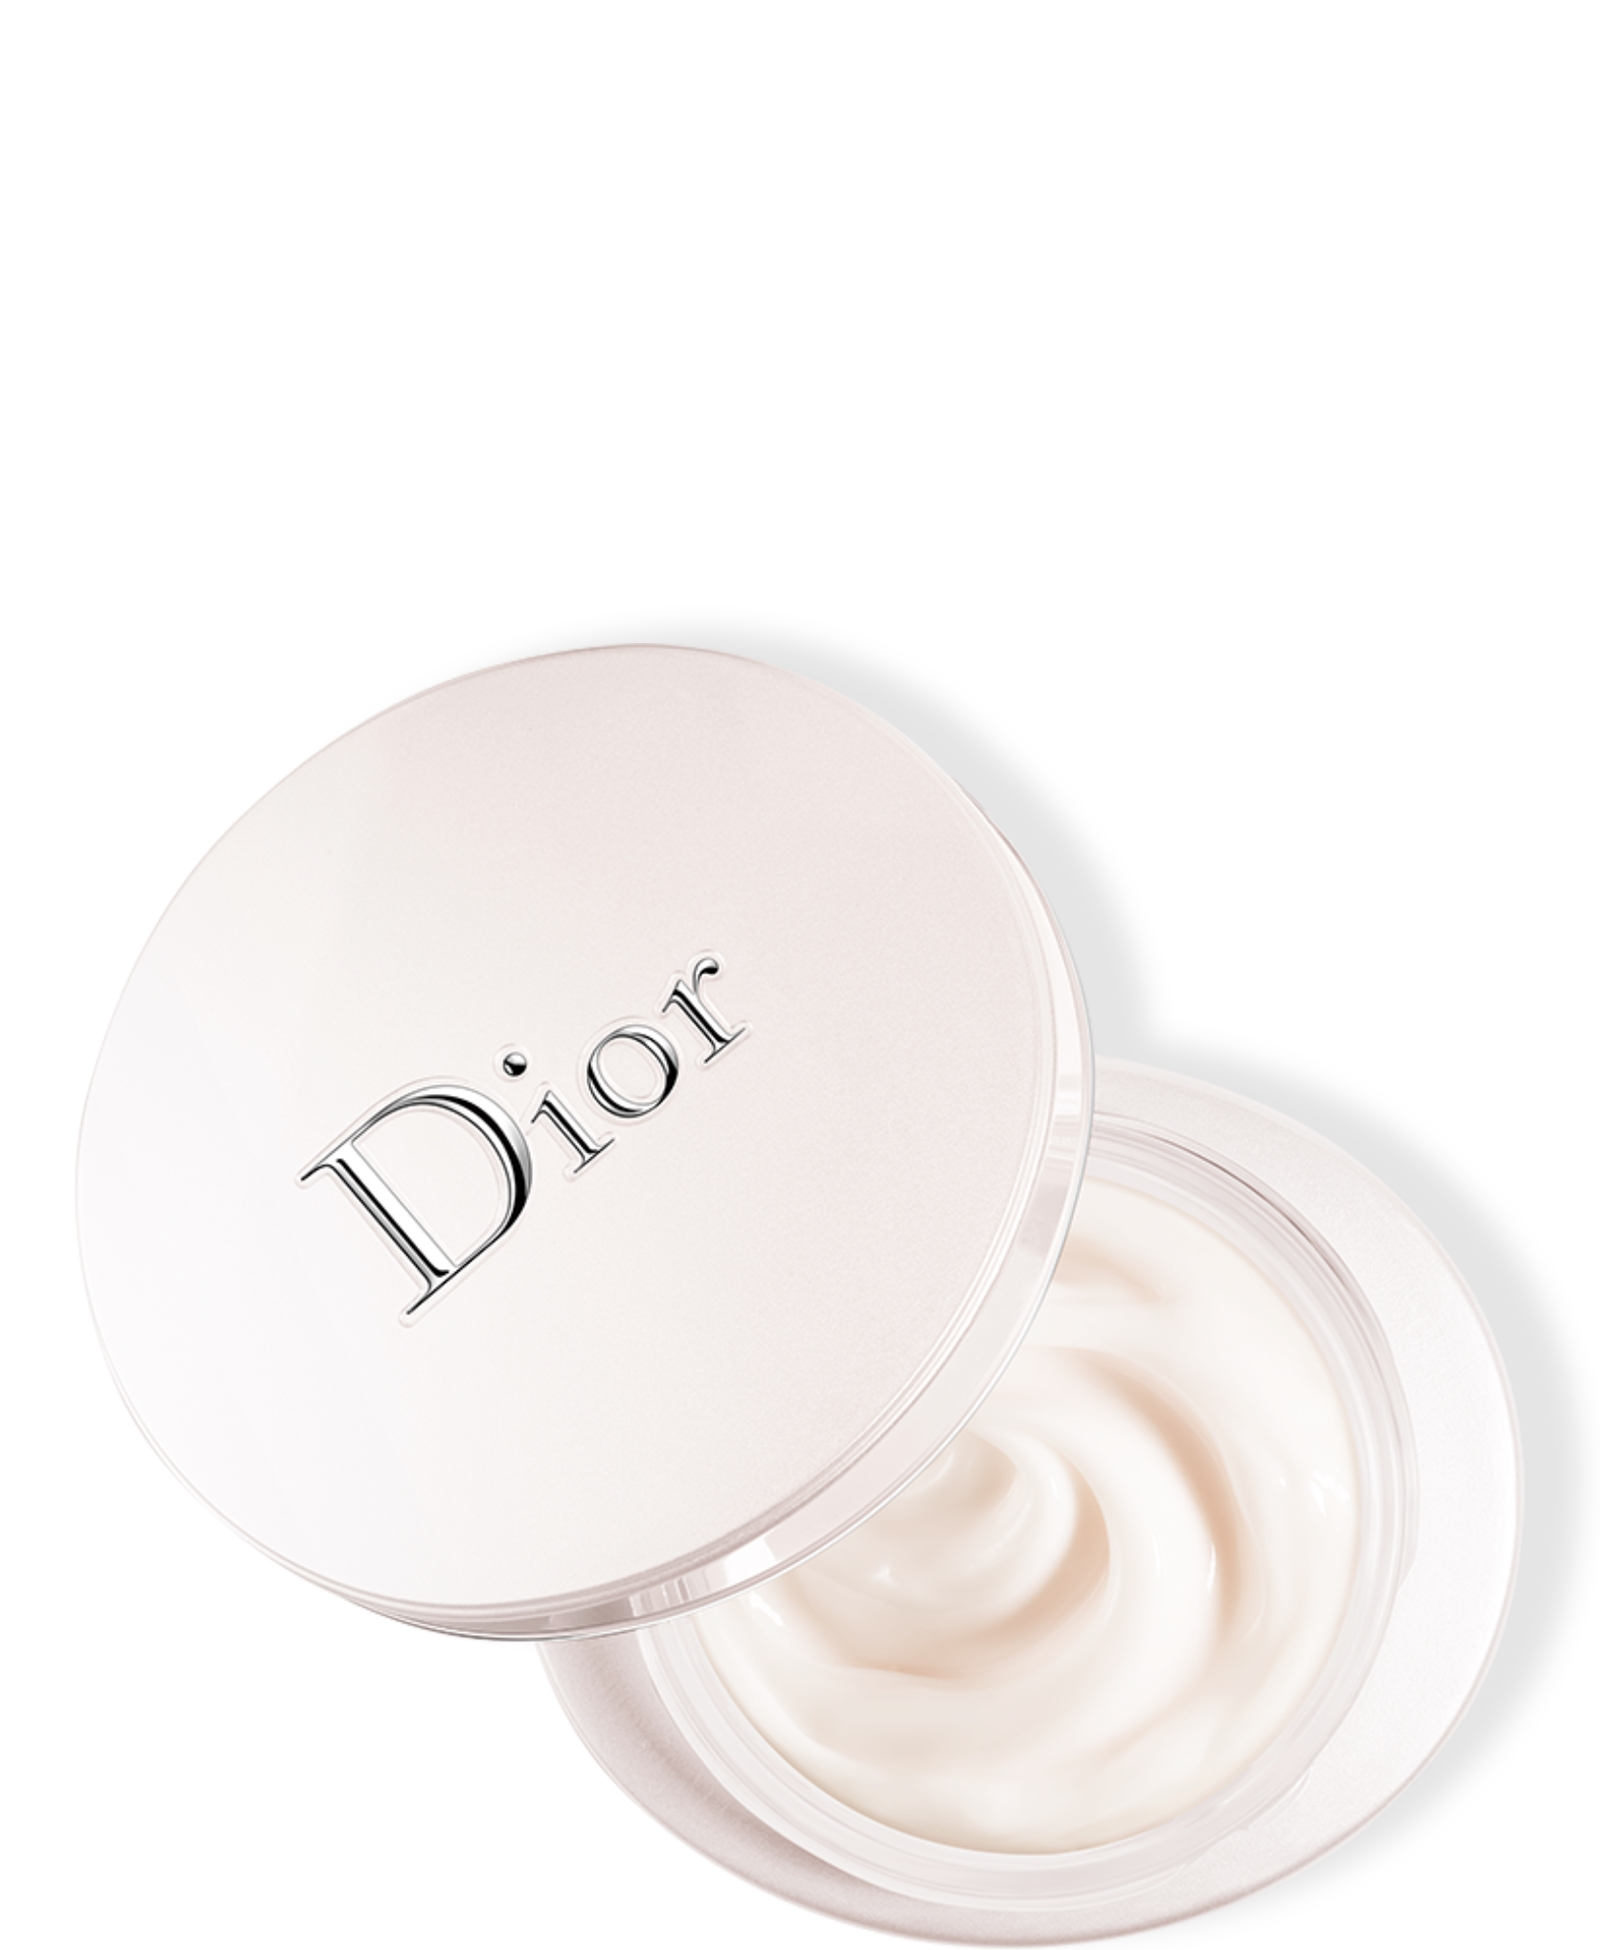 DIOR Capture Totale C.E.L.L. ENERGY - Firming & Wrinkle-Correcting Eye Cream